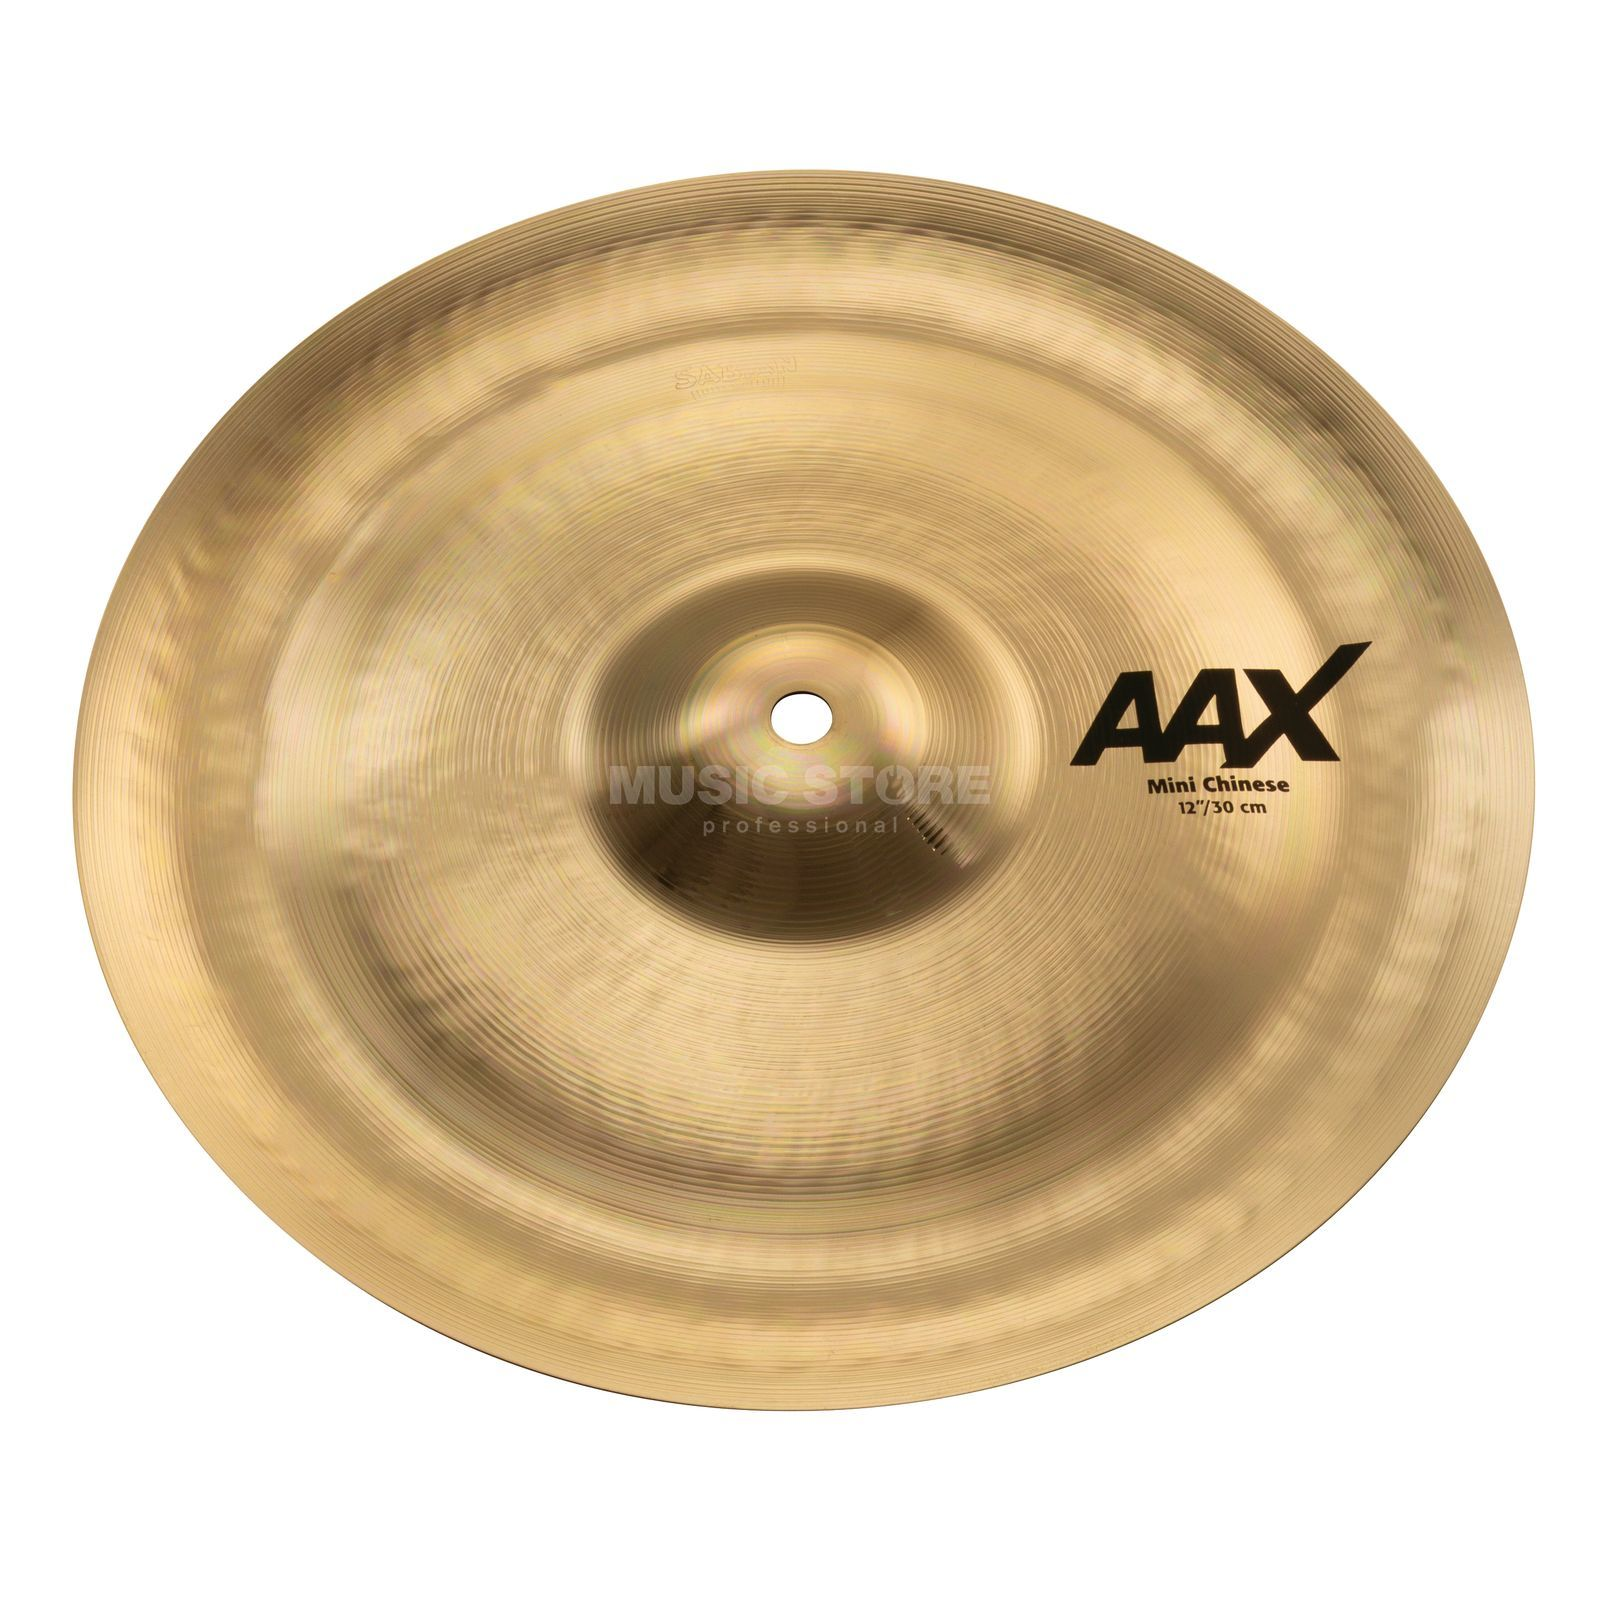 "Sabian AAX Mini China 12"" Finition brillante, Overstock Image du produit"